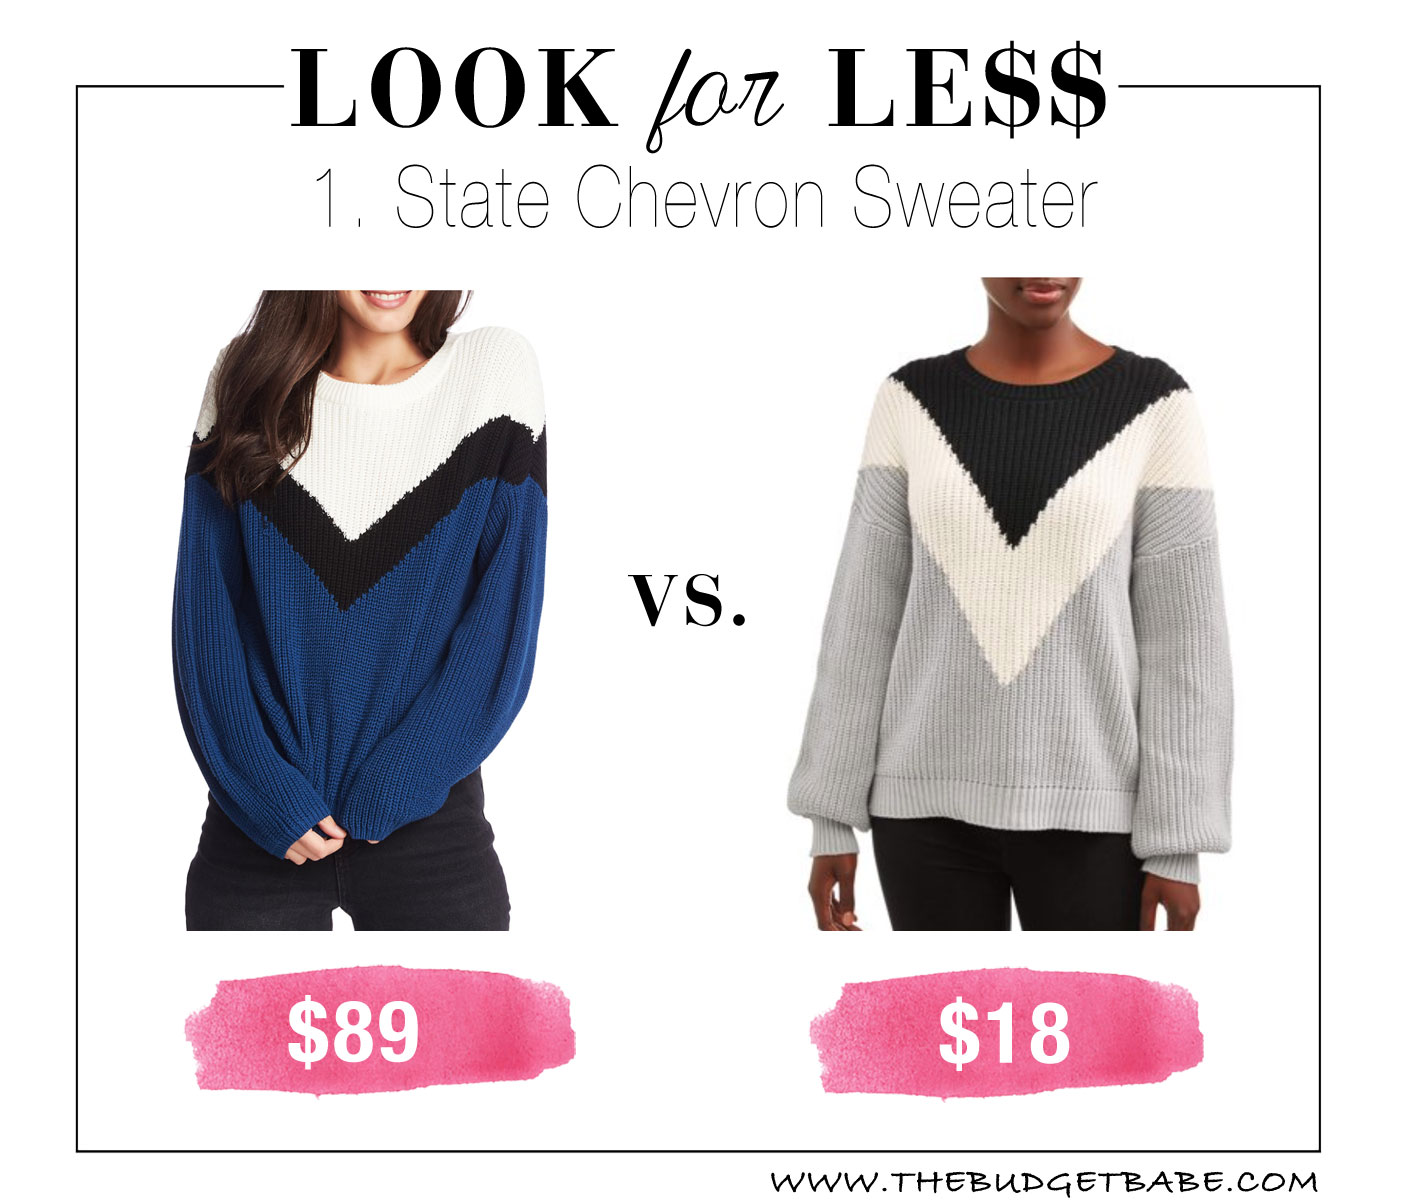 Chevron sweater at Walmart!